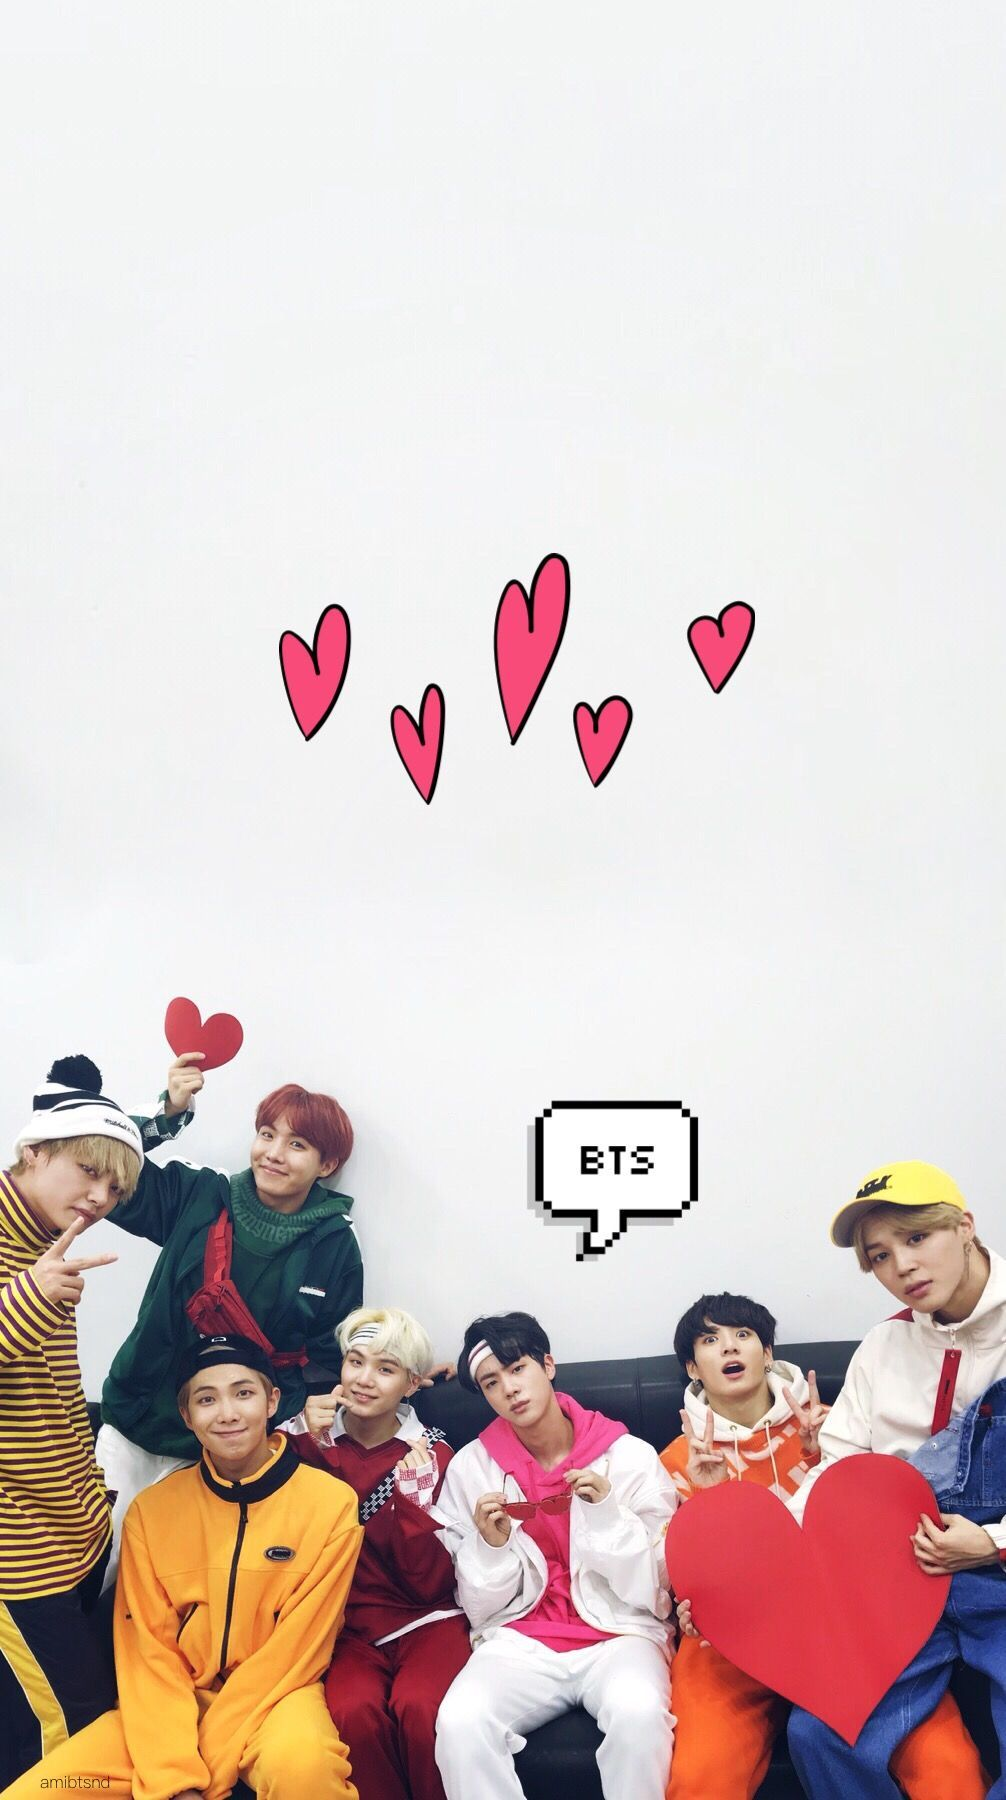 Image Result For Bts Wallpaper Iphone Bts In 2019 Bts Bts